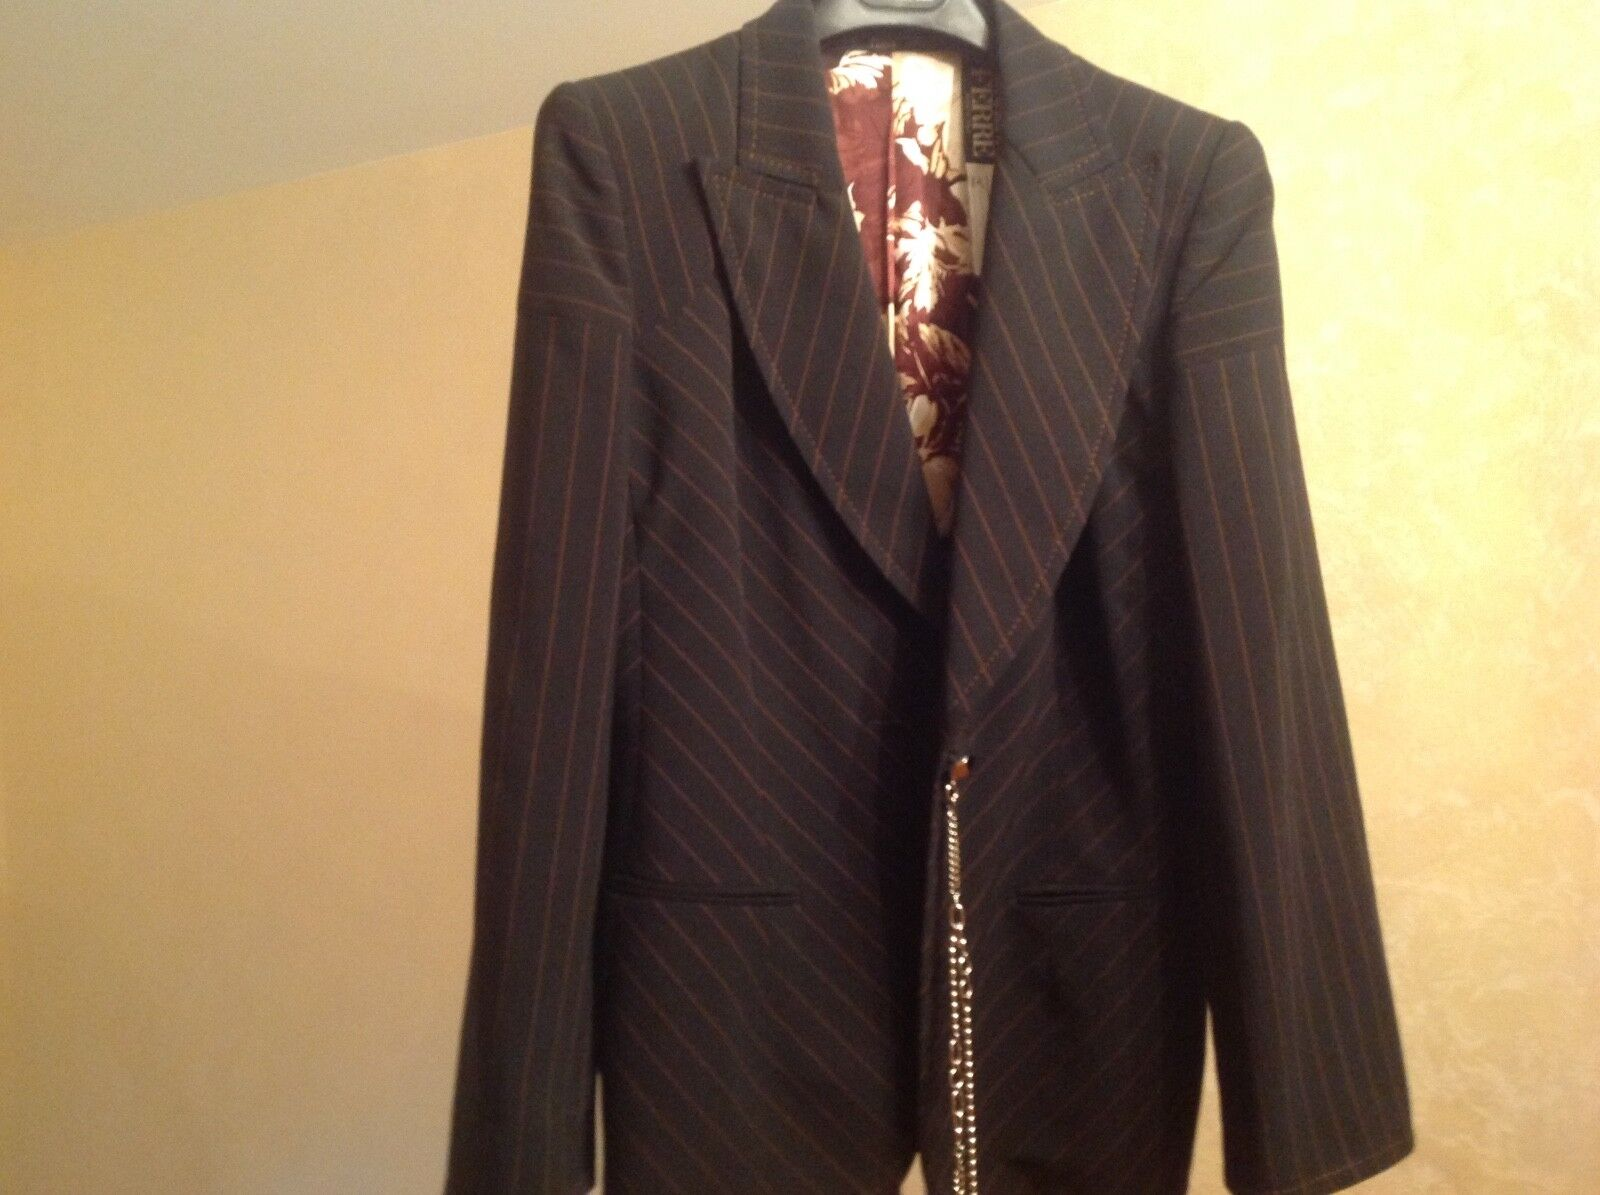 Giafranco Ferre Womens Blazer Brown New SZ 44 Made in